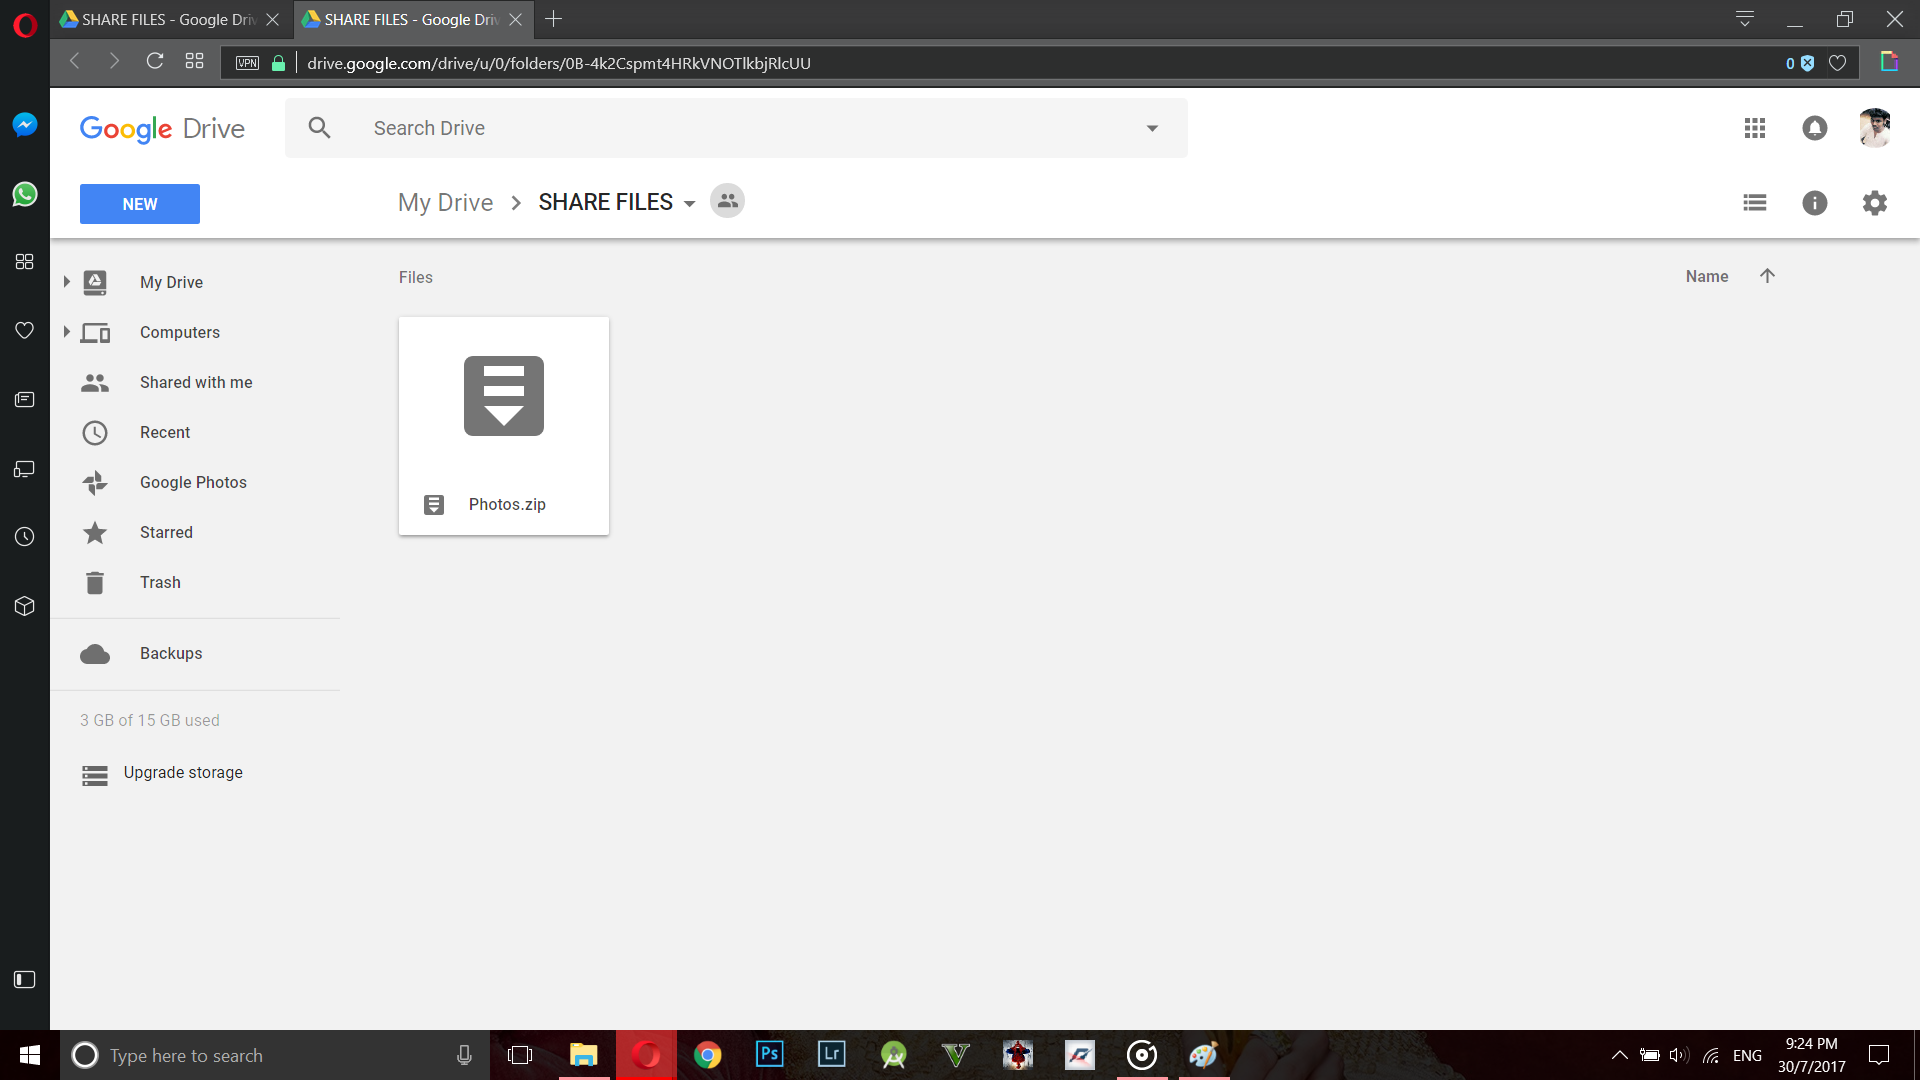 Upload FIles To Anyone's Google Drive